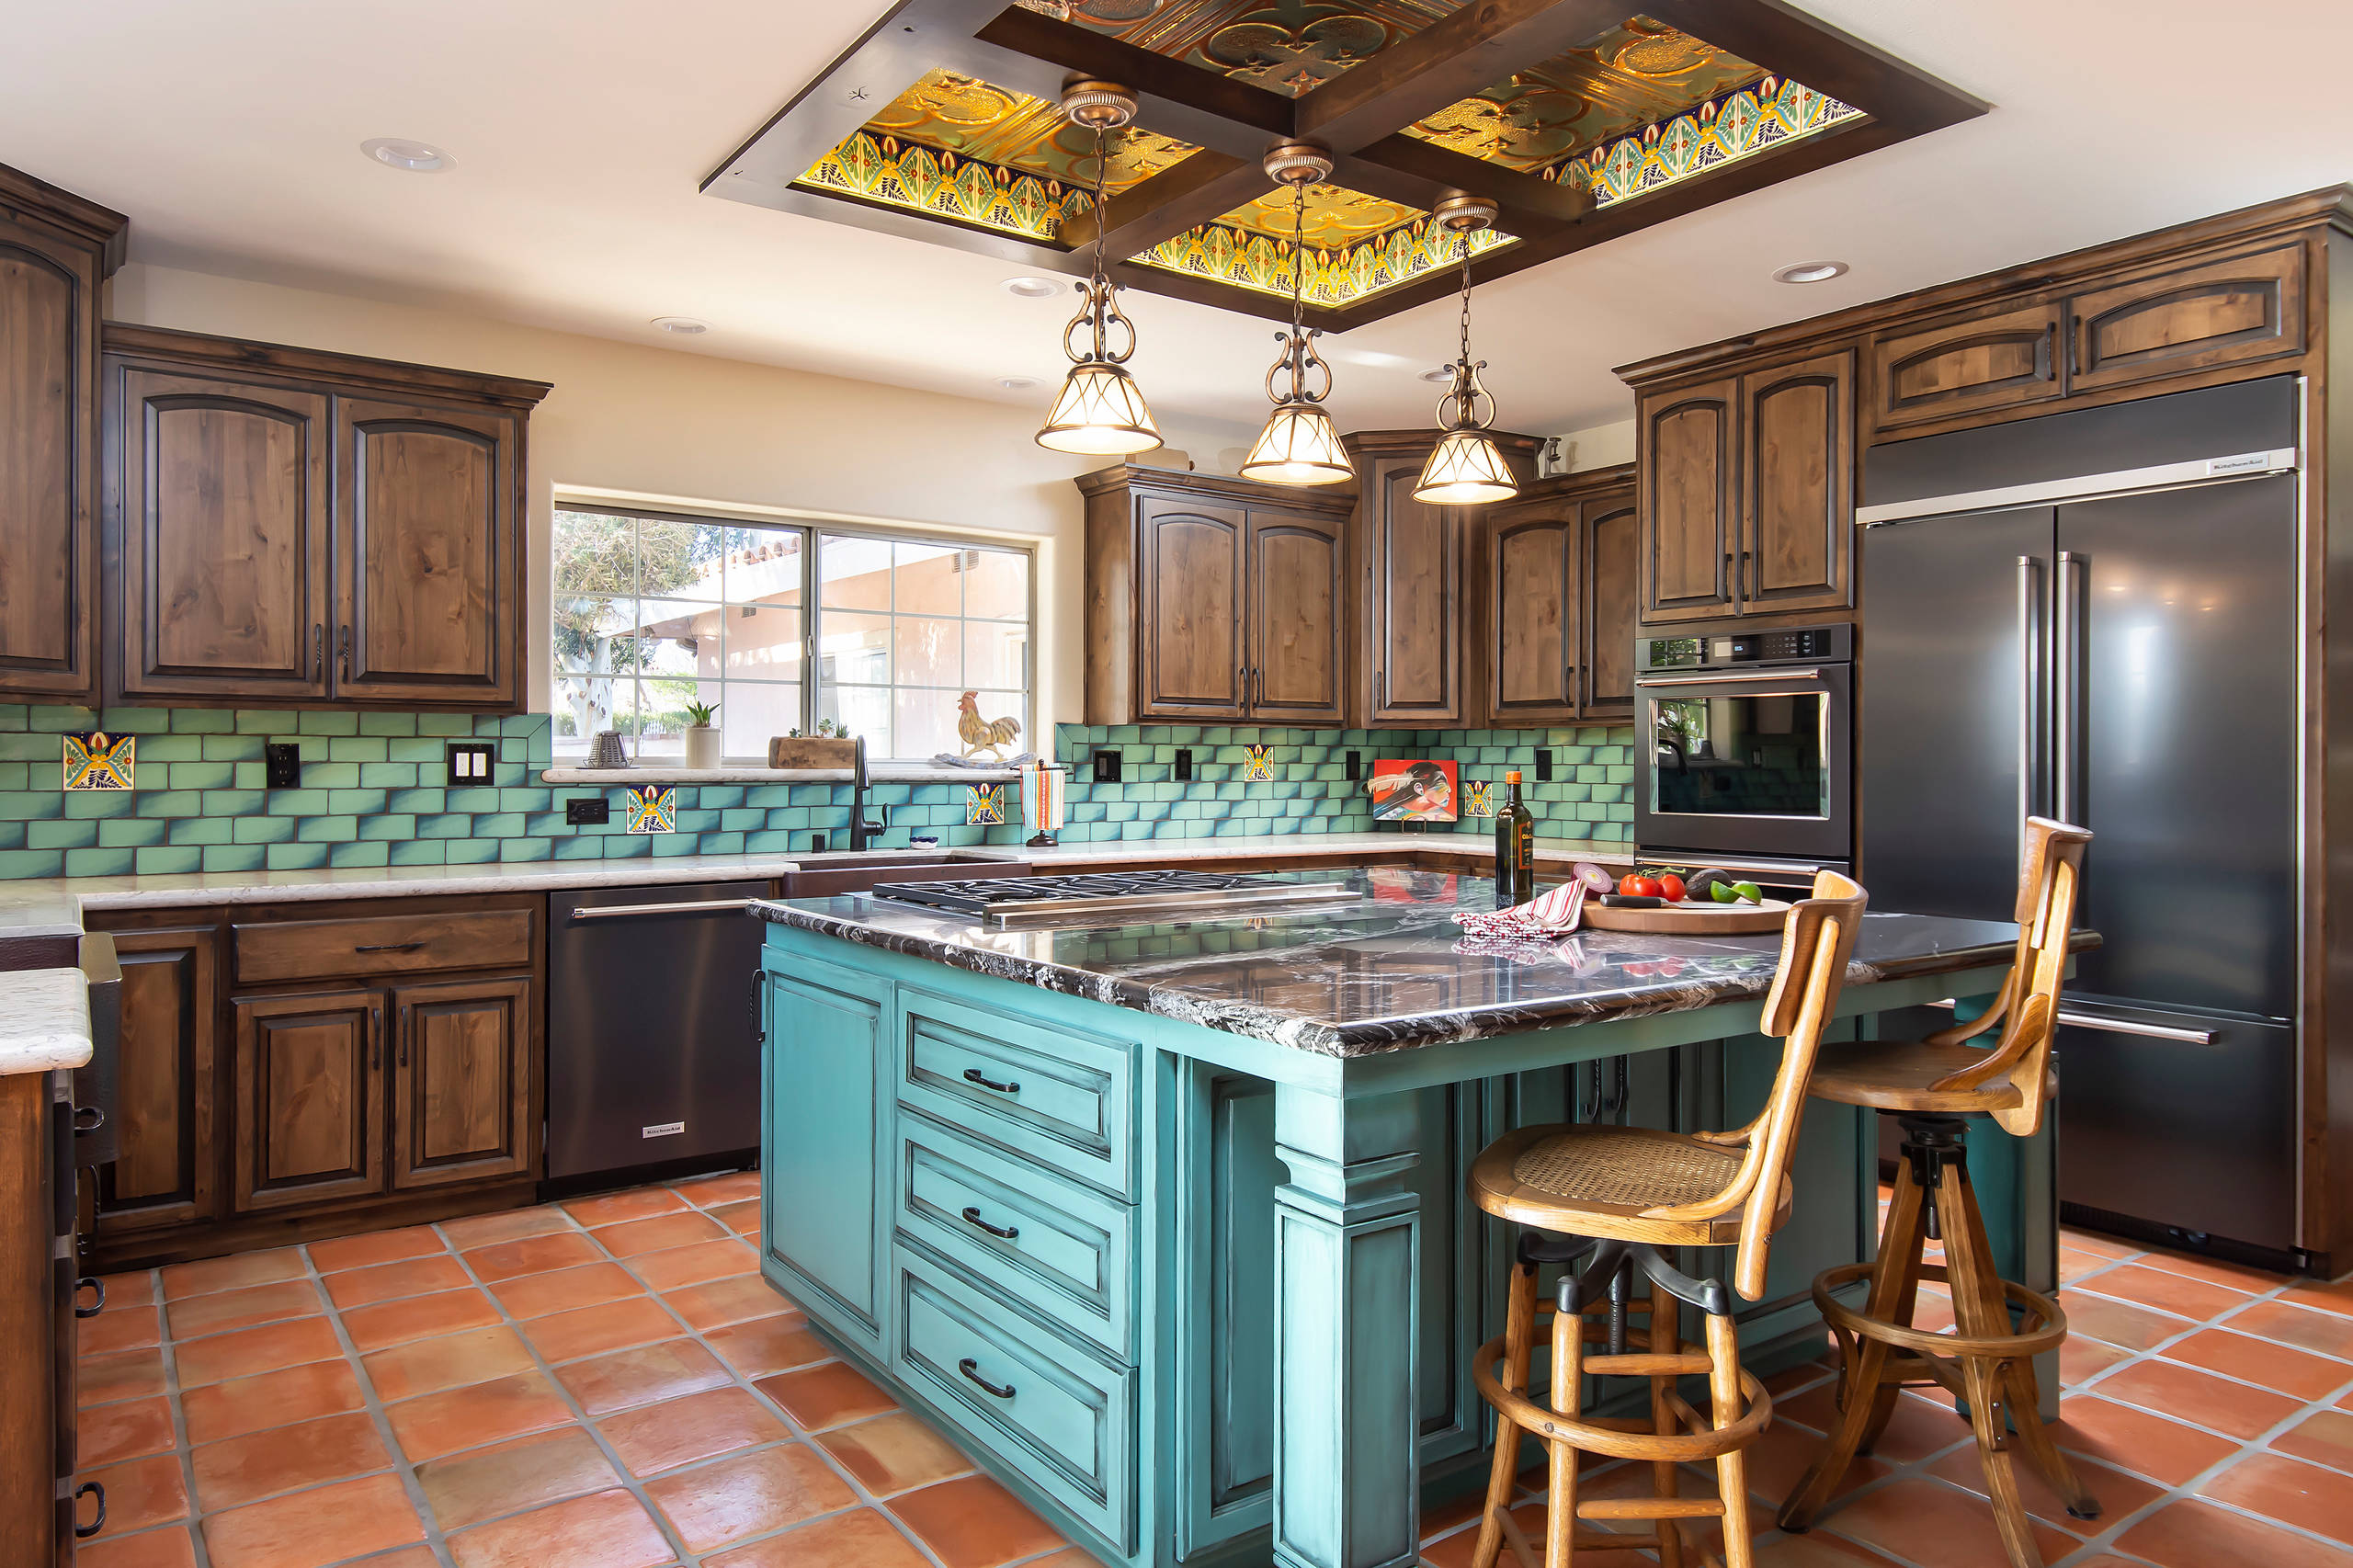 - 75 Beautiful Terra-Cotta Tile Kitchen Pictures & Ideas - July